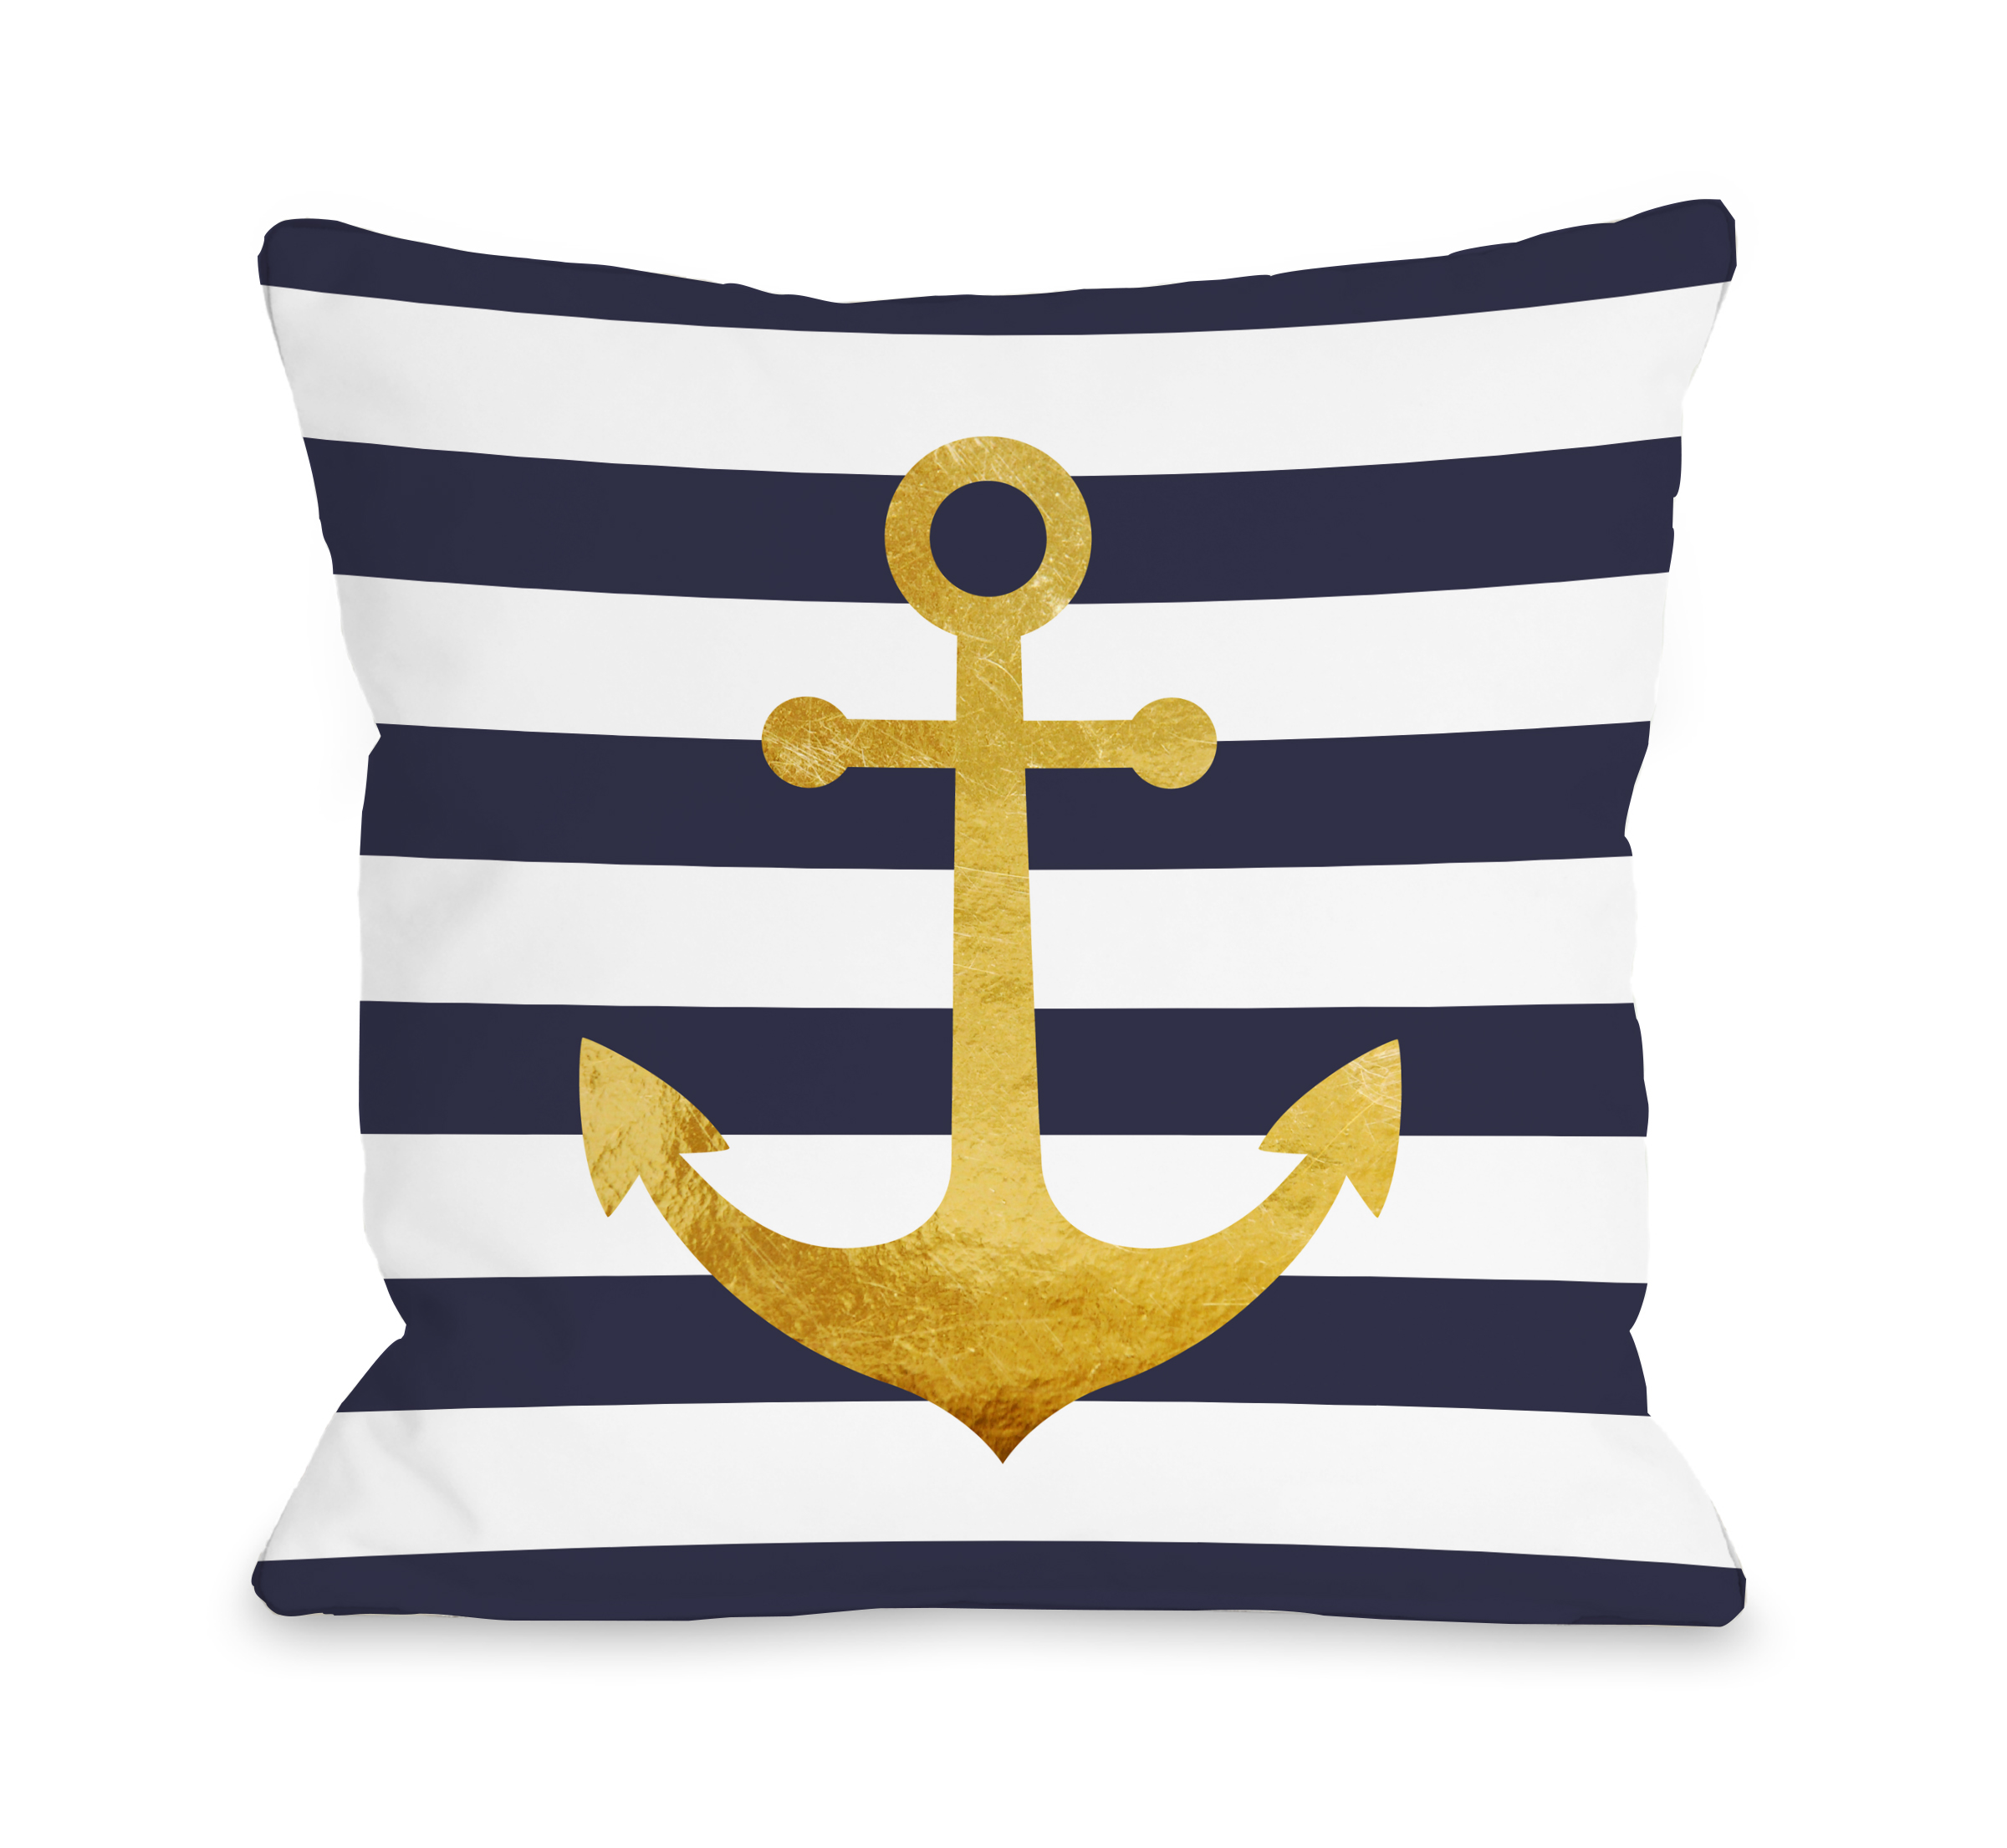 Nautical Stripes Anchor - Navy 16x16 Pillow by OBC